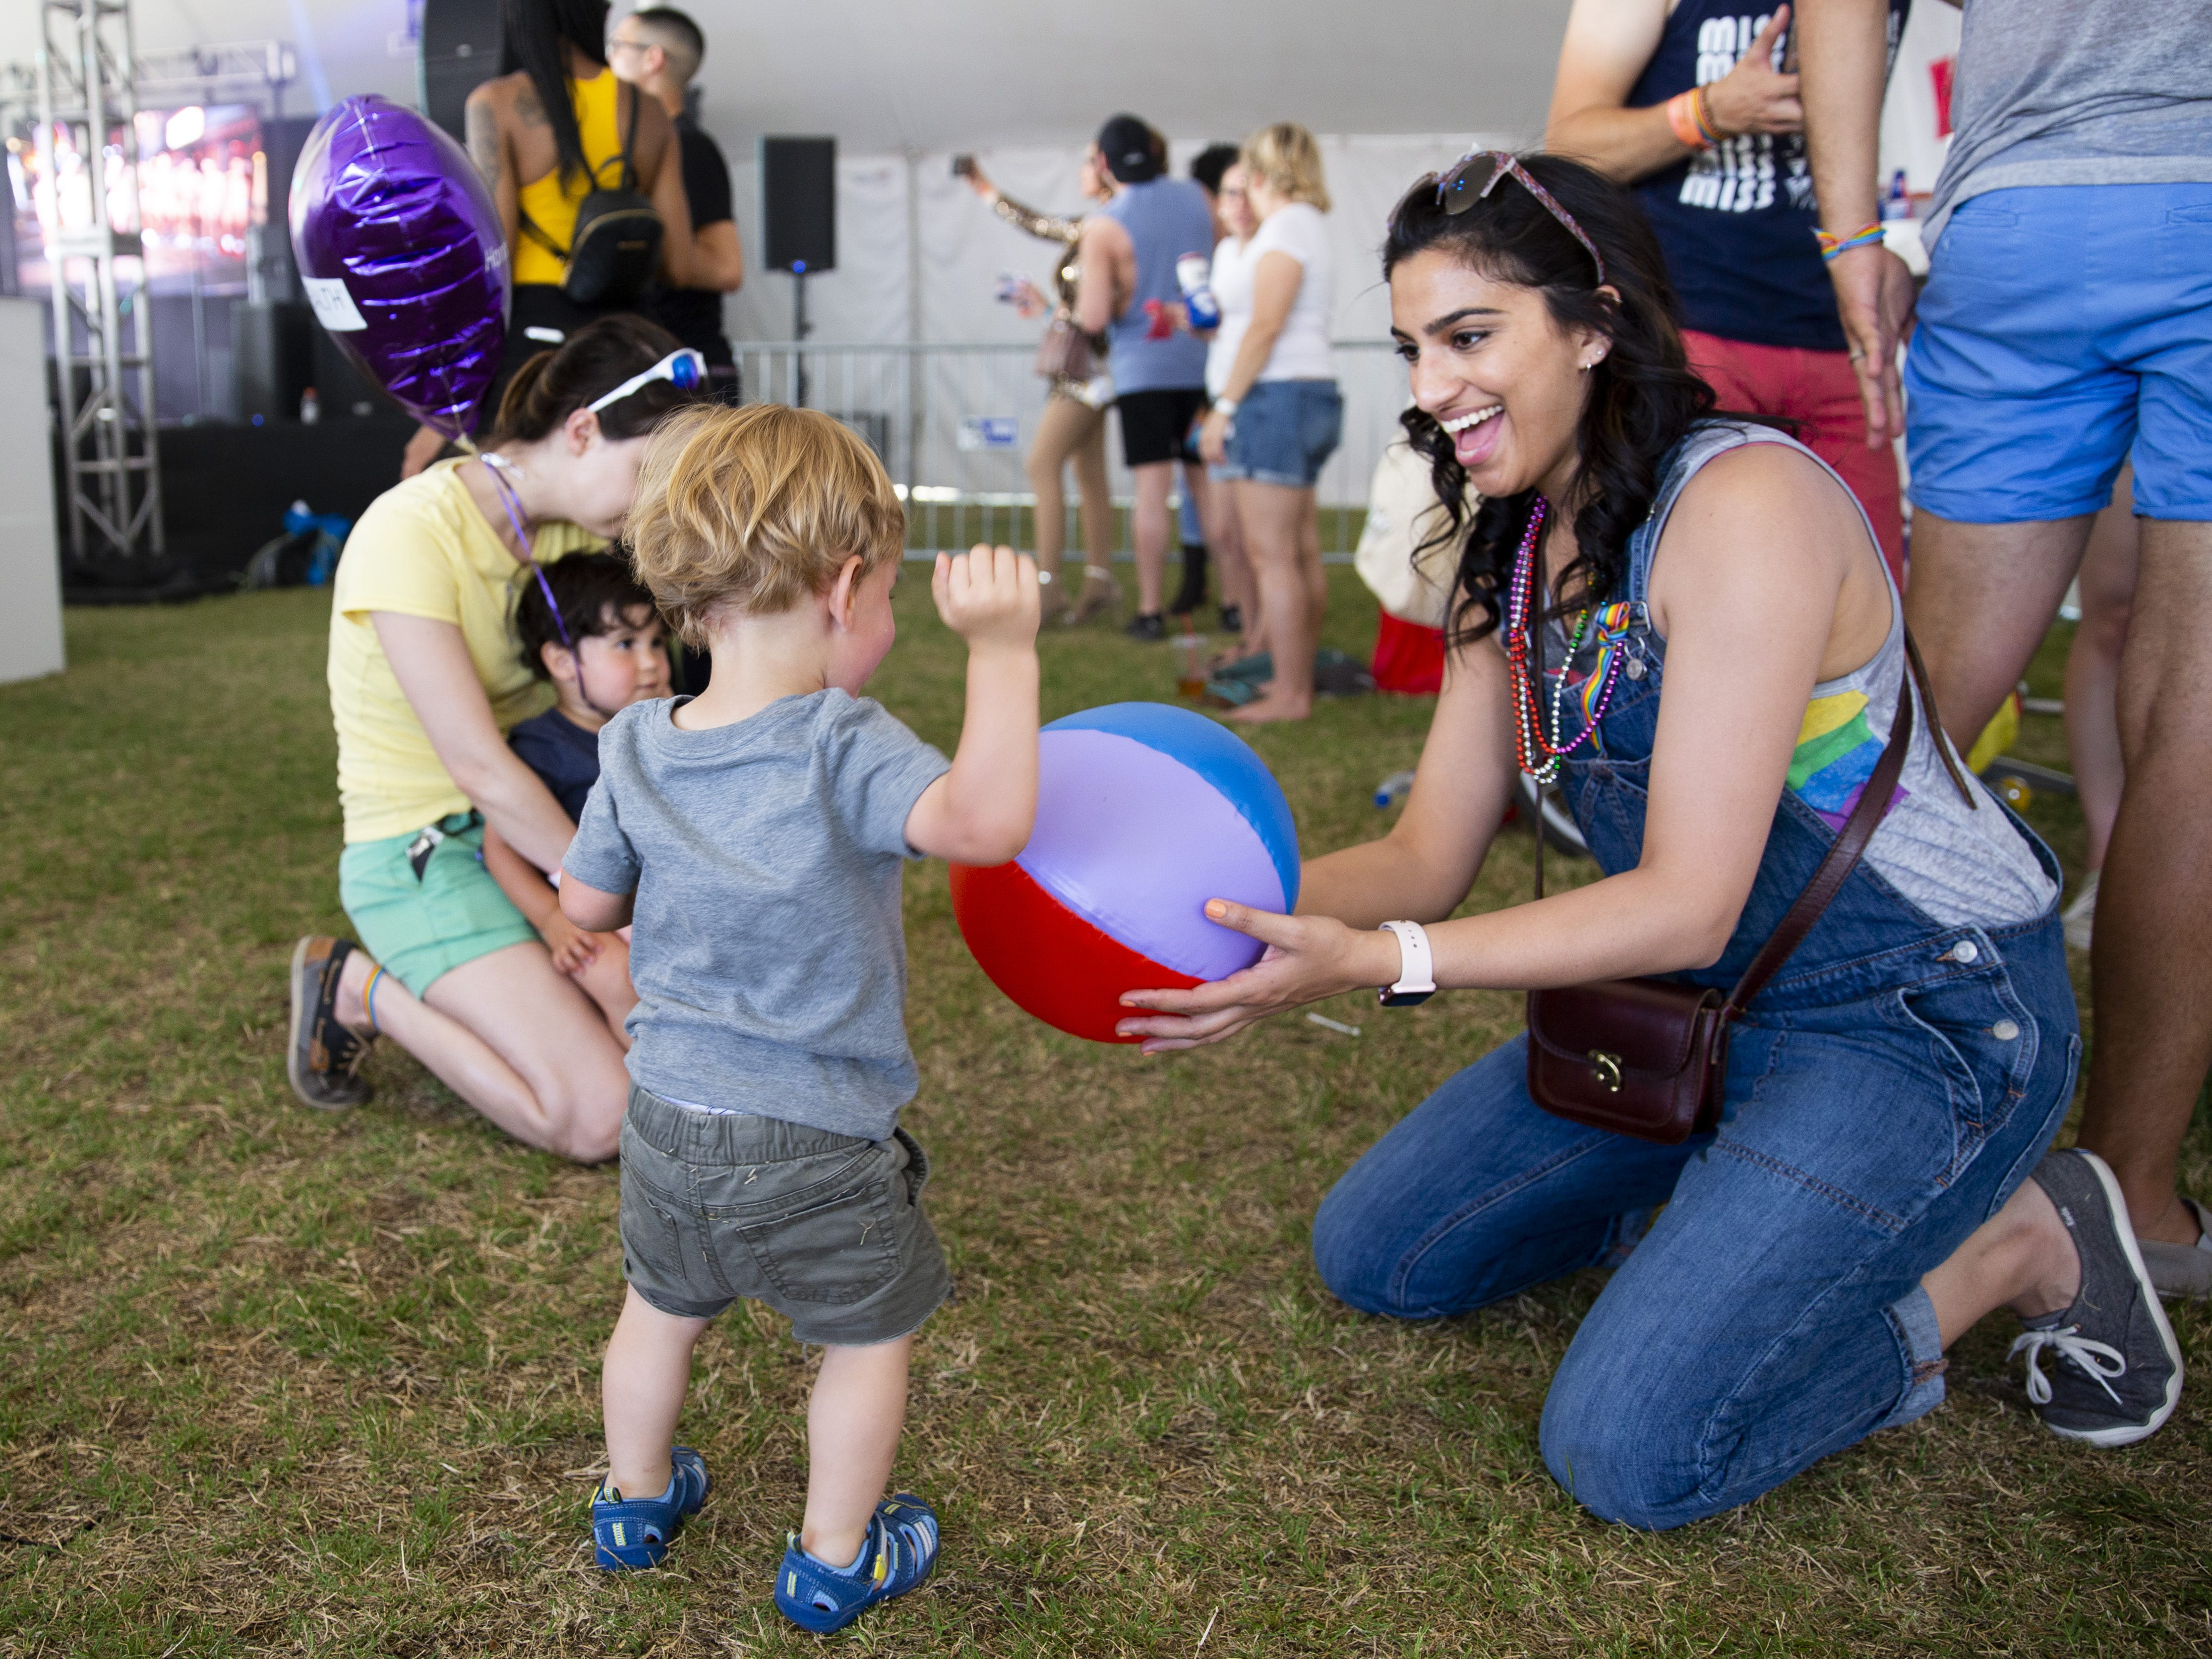 Shivani Desai offers a beach ball to Caellum Fontes, who is almost 2, during Phoenix Pride at Steele Indian School Park on Saturday, April 6, 2019.